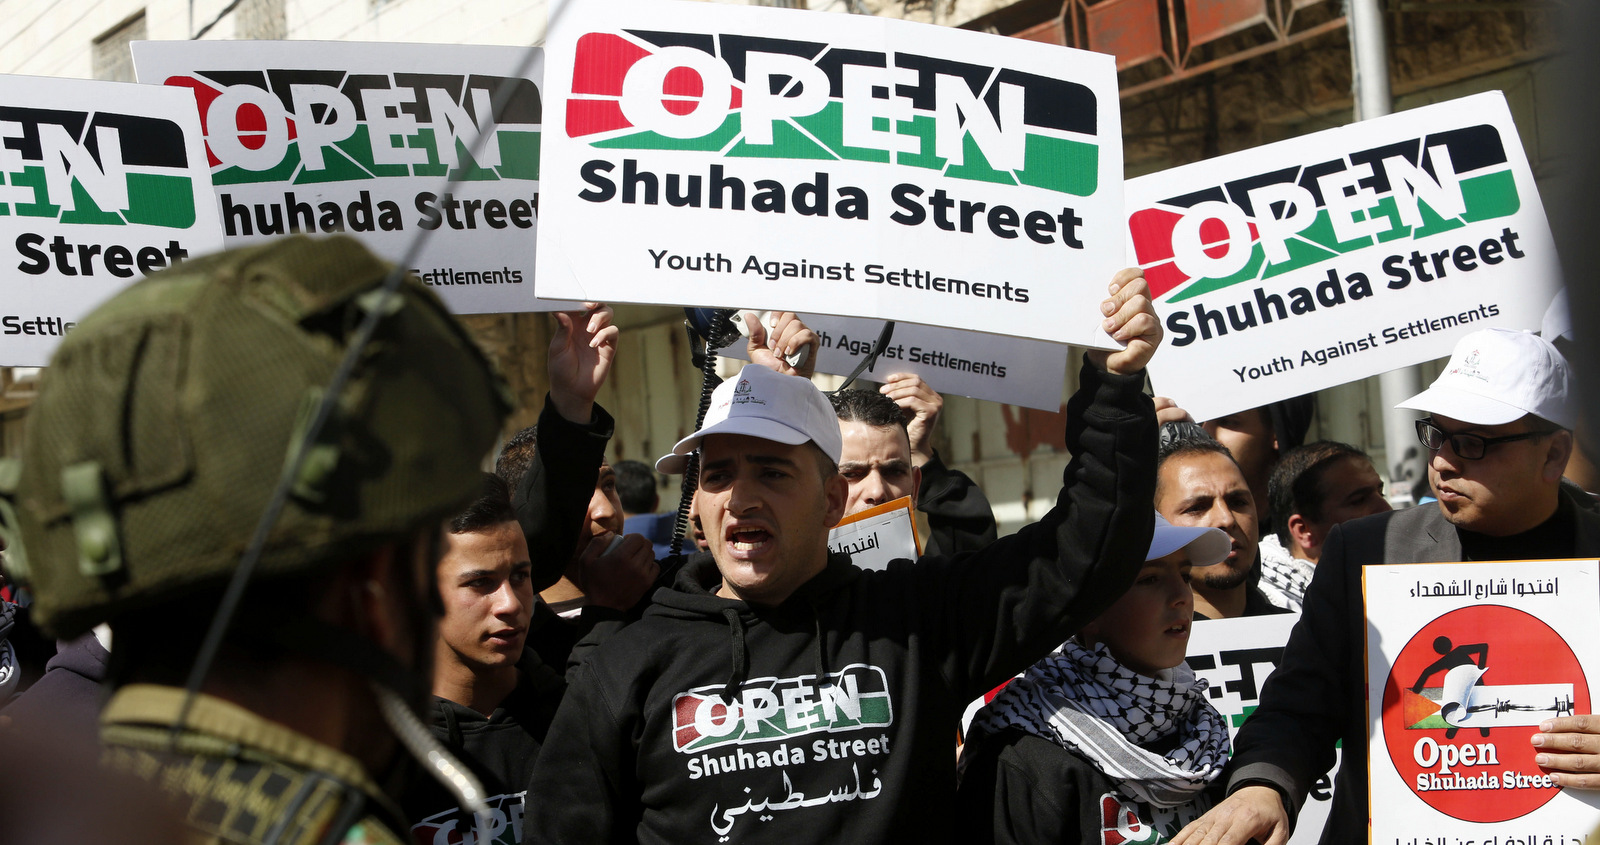 Protesters hold posters demanding the reopening of Shuhada Street in Hebron, Friday, Feb. 27, 2015. Israel closed Shuhada Street for Palestinians in 1994 after an Israeli killed 29 Palestinians and wounded over a 100 praying in a mosque. (AP/Nasser Shiyoukhi)